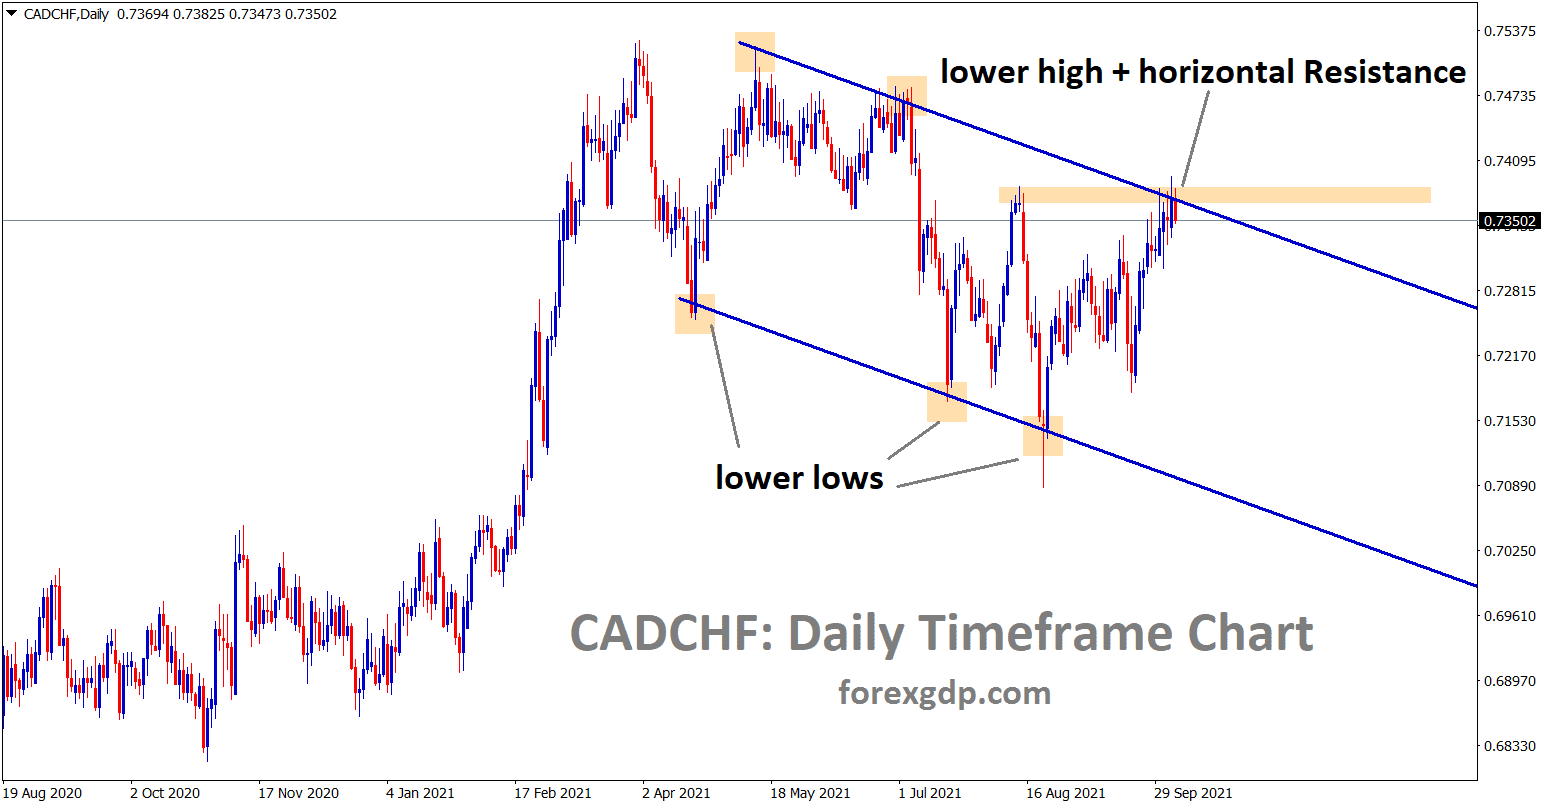 CADCHF is making a correction from the lower high and the horizontal resistance